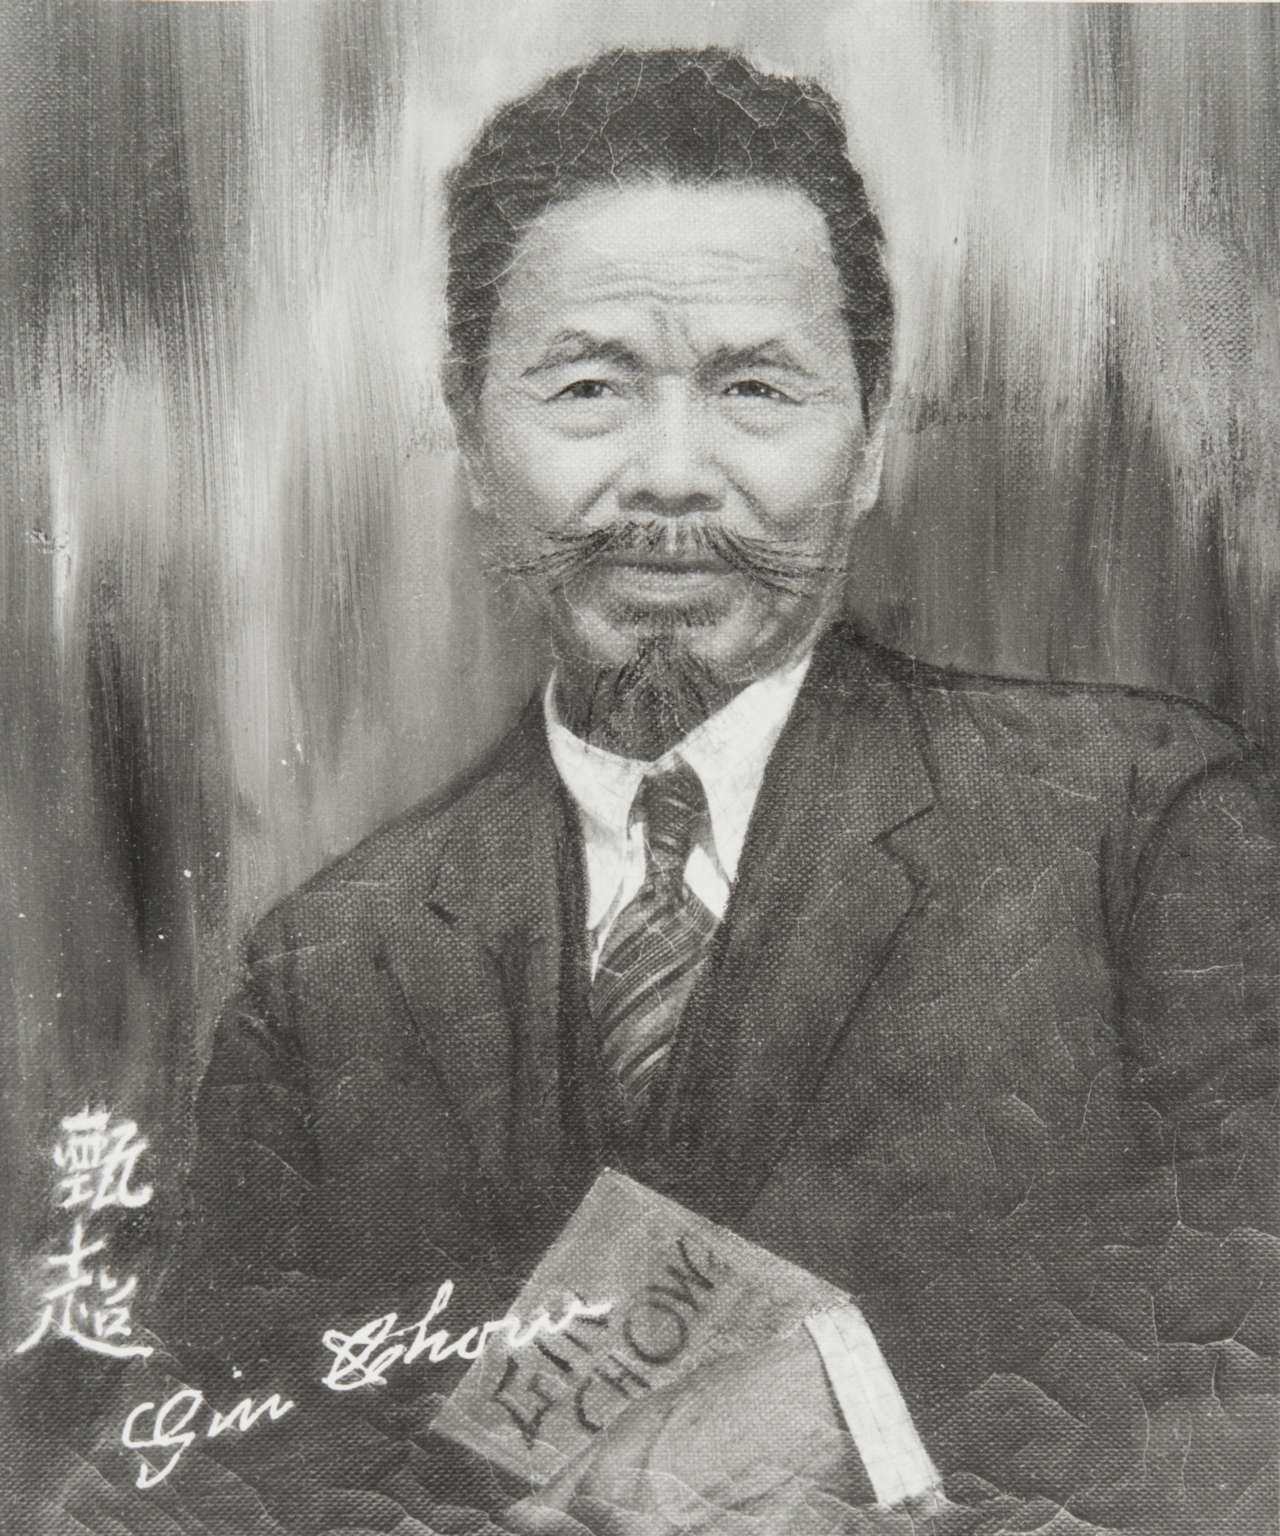 Gin Chow, Santa Barbara farmer and businessman : early 1900s. Predicted date of 1925 earthquake and protected water rights of Lompoc Valley farmers.